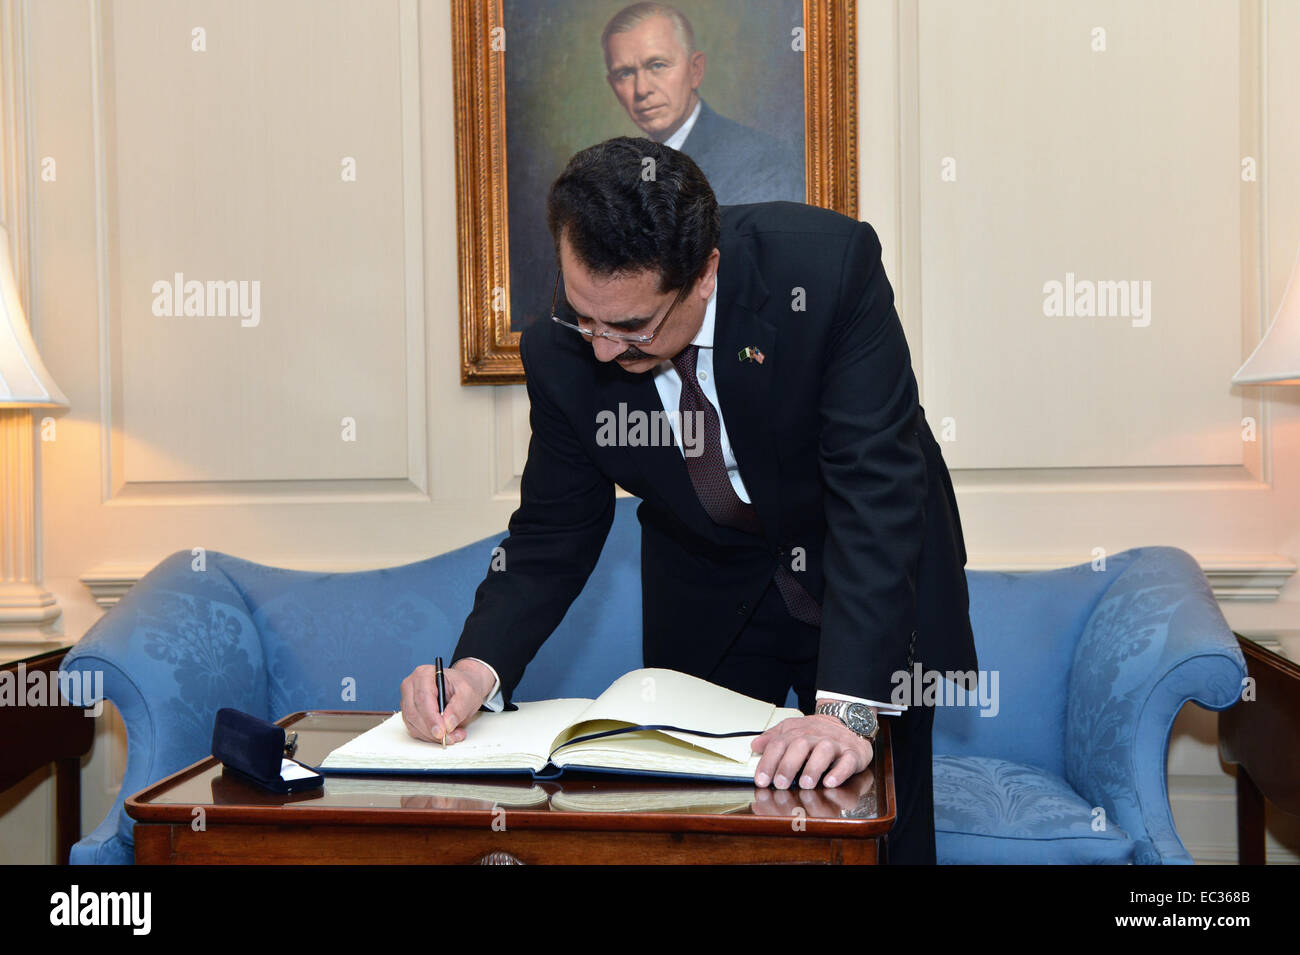 Pakistan Chief of Army Staff Raheel Sharif signs the guest book at the Department of State in Washington, D.C., - Stock Image